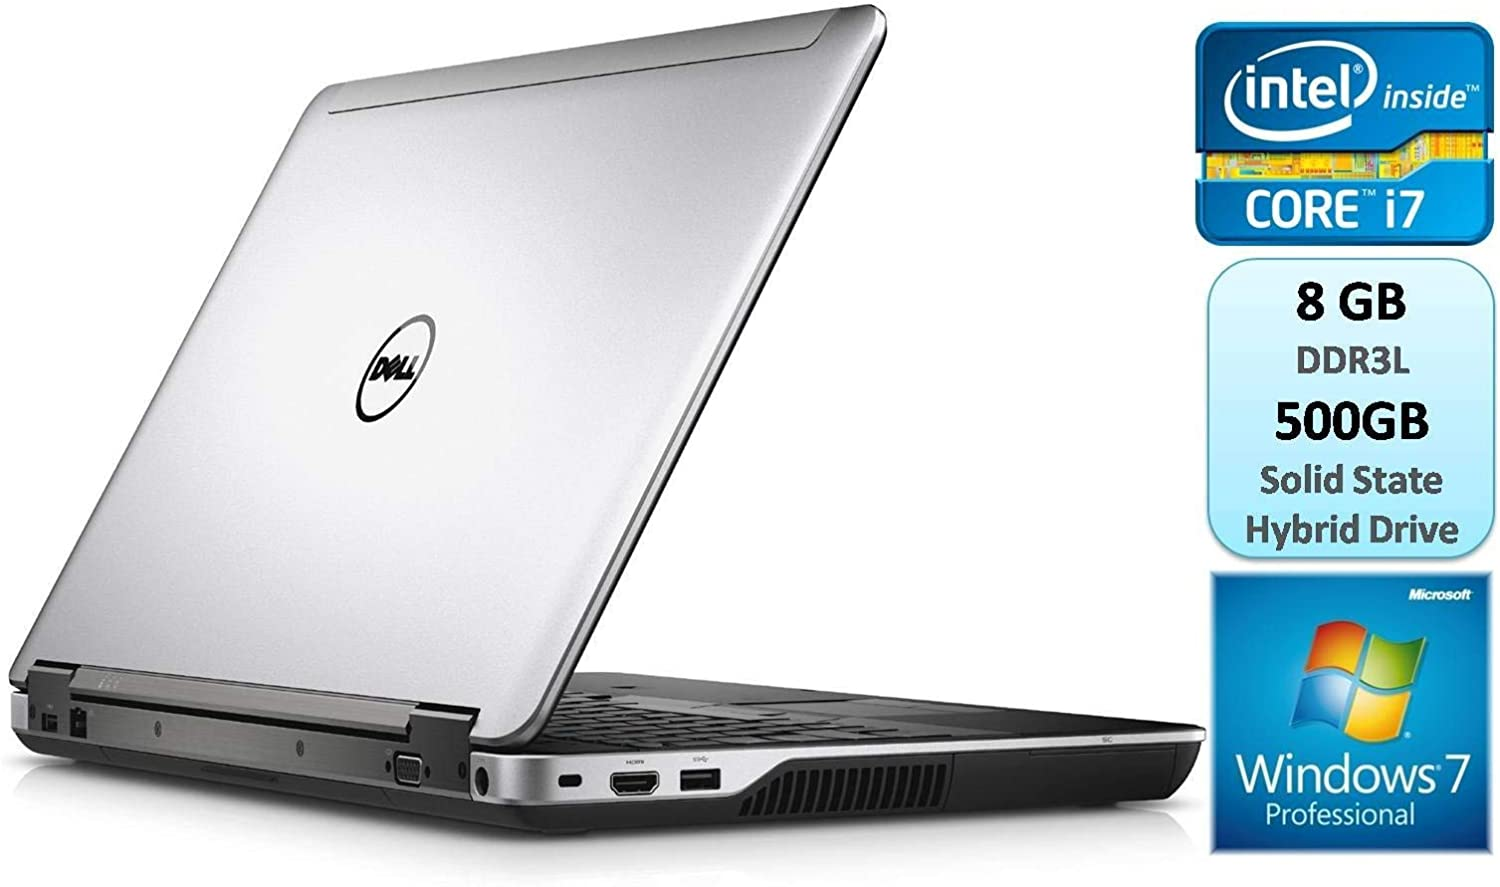 Dell Latitude E6540 Business Laptop 15.6 Inch Intel Core i7 i7-4610M 3.0 GHz 8GB DDR3L 500GB Solid State Hybrid Drive SSHD Webcam DVDRW Windows 7 Pro